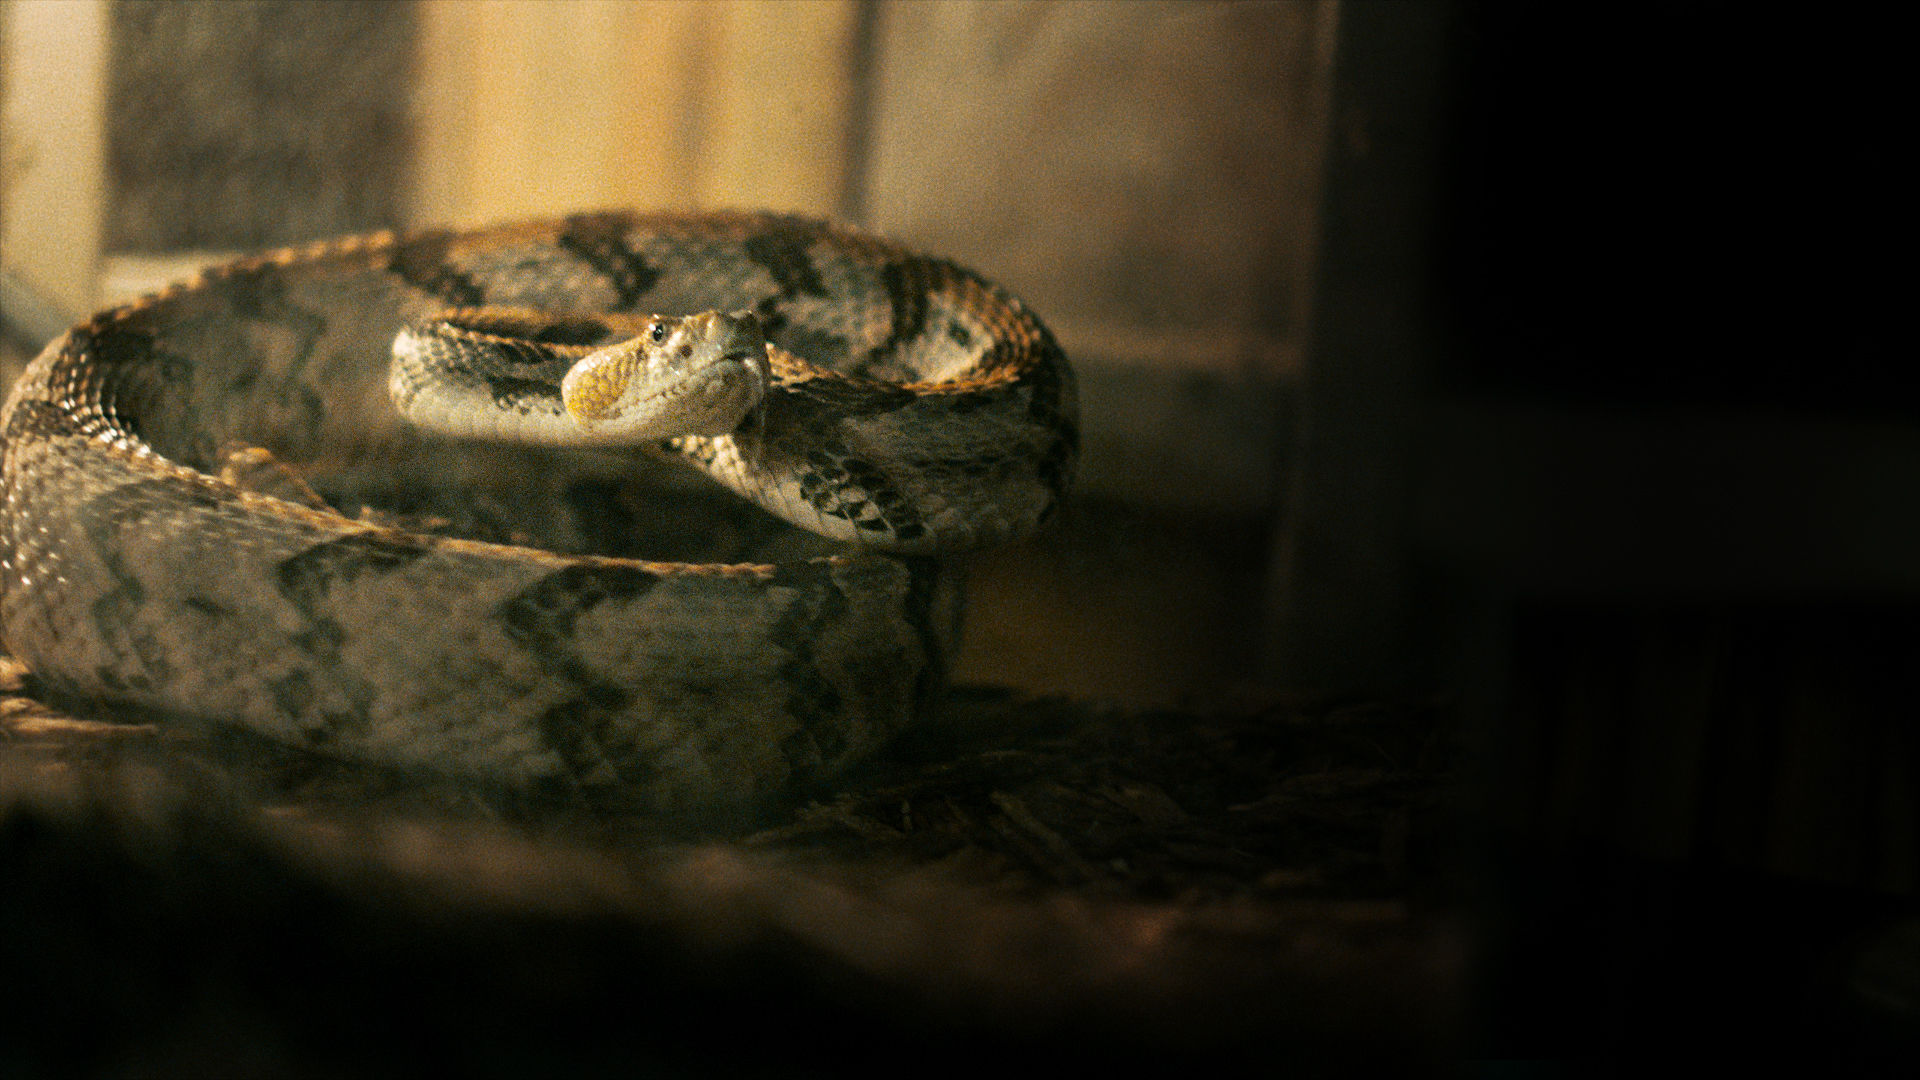 'Alabama Snake' to air on HBO, featuring minister's deadly plan with rattlesnake